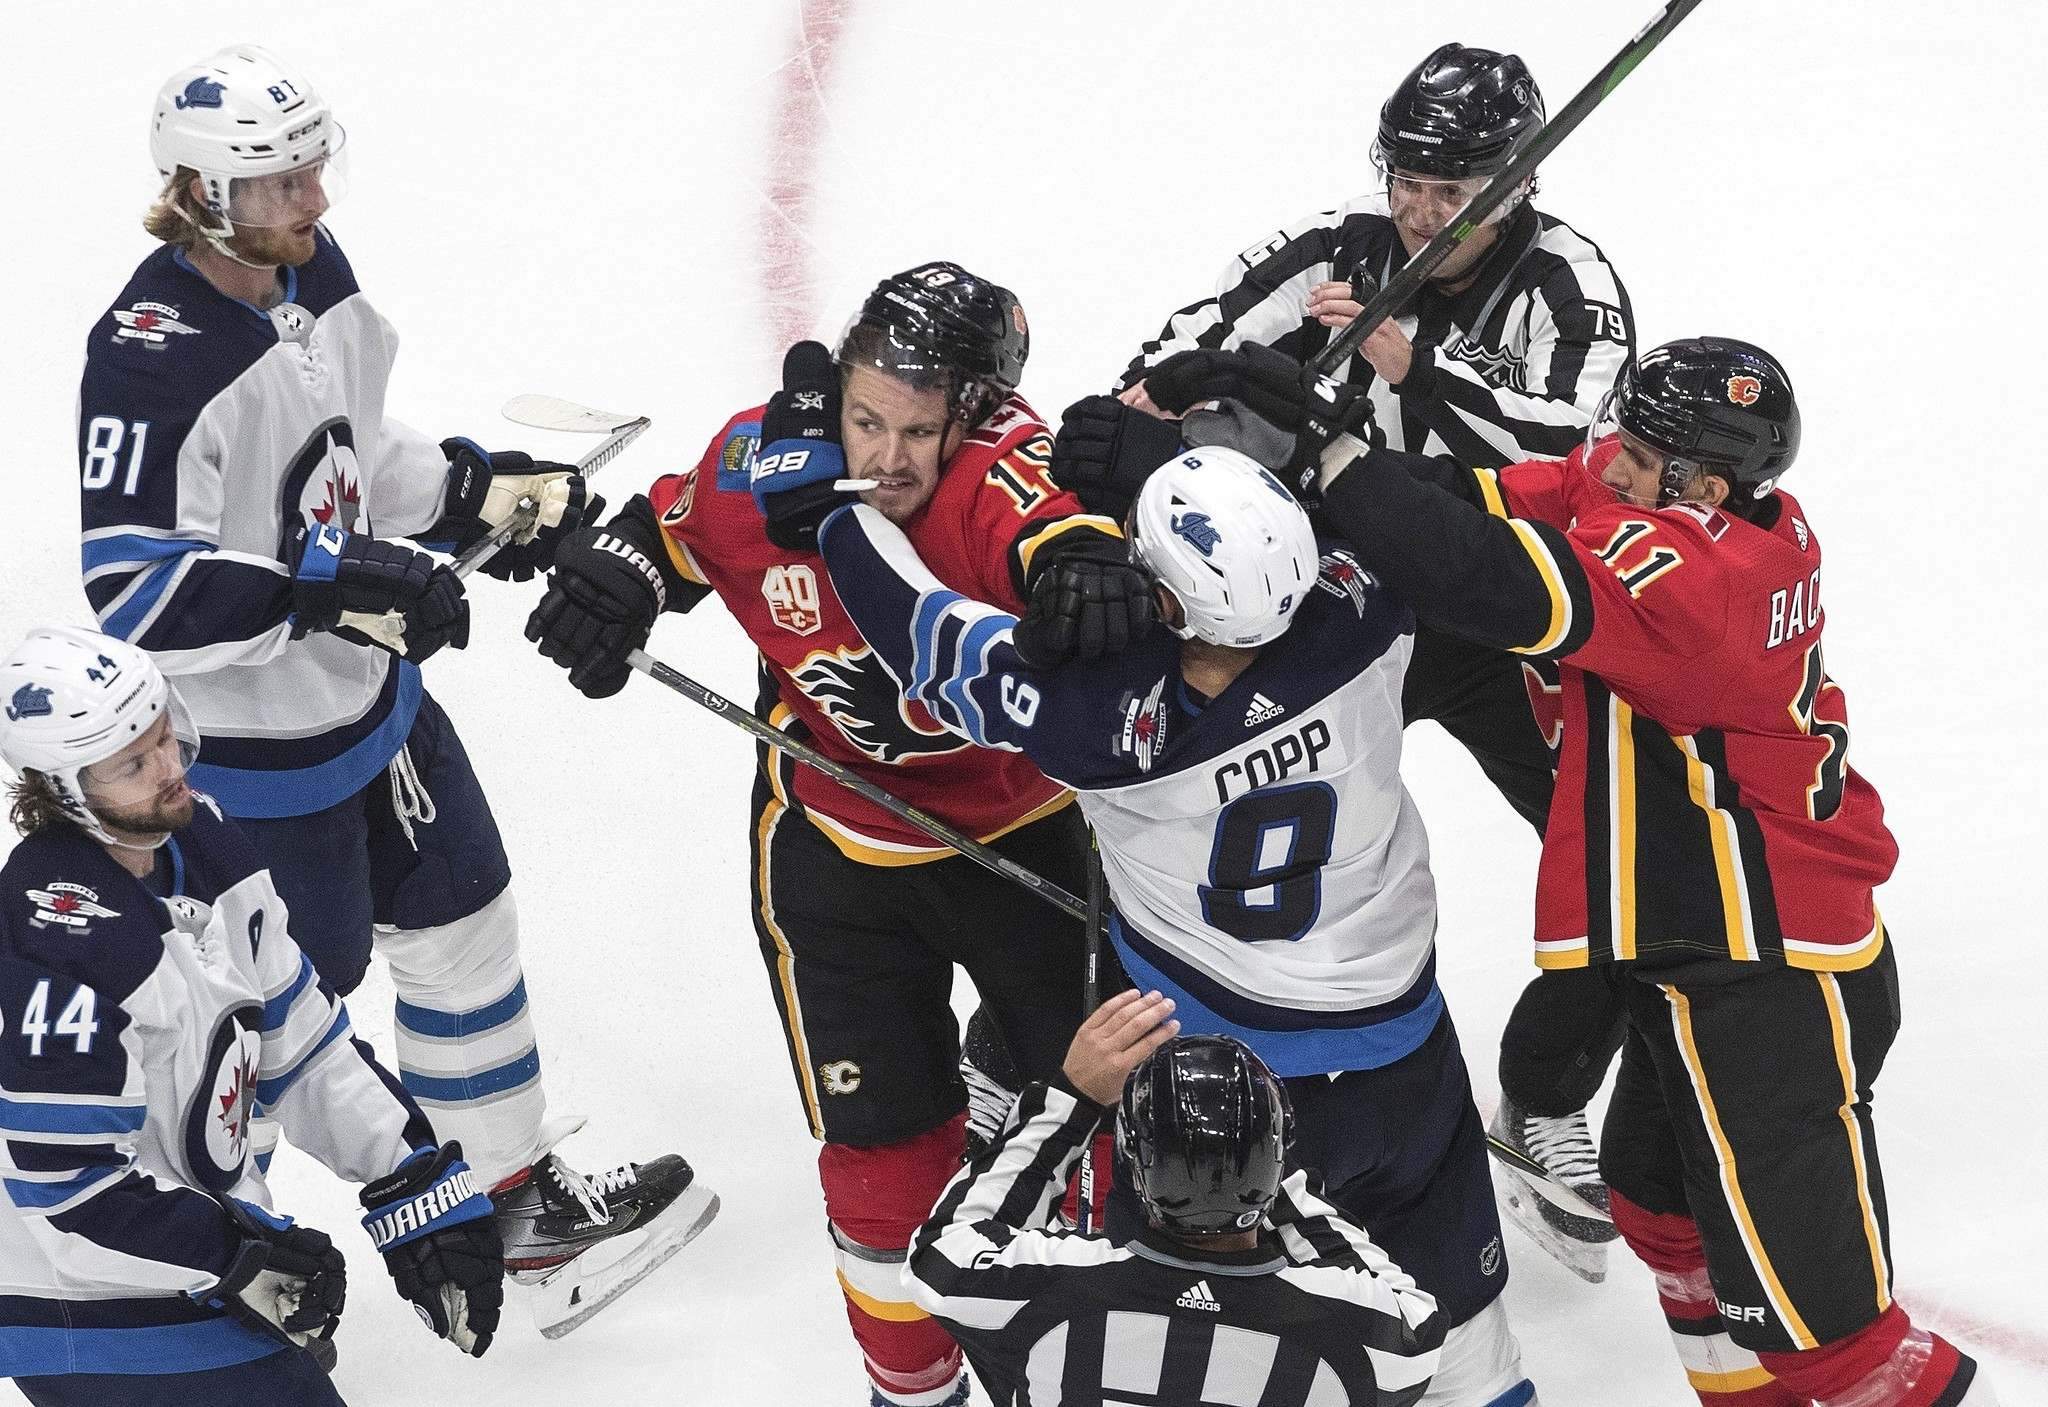 Jason Franson / The Canadian Press</p><p>Winnipeg Jets' Andrew Copp (9) and Calgary Flames' Matthew Tkachuk (19) rough it up during third period NHL qualifying round game action in Edmonton, on Monday August 3, 2020.</p>